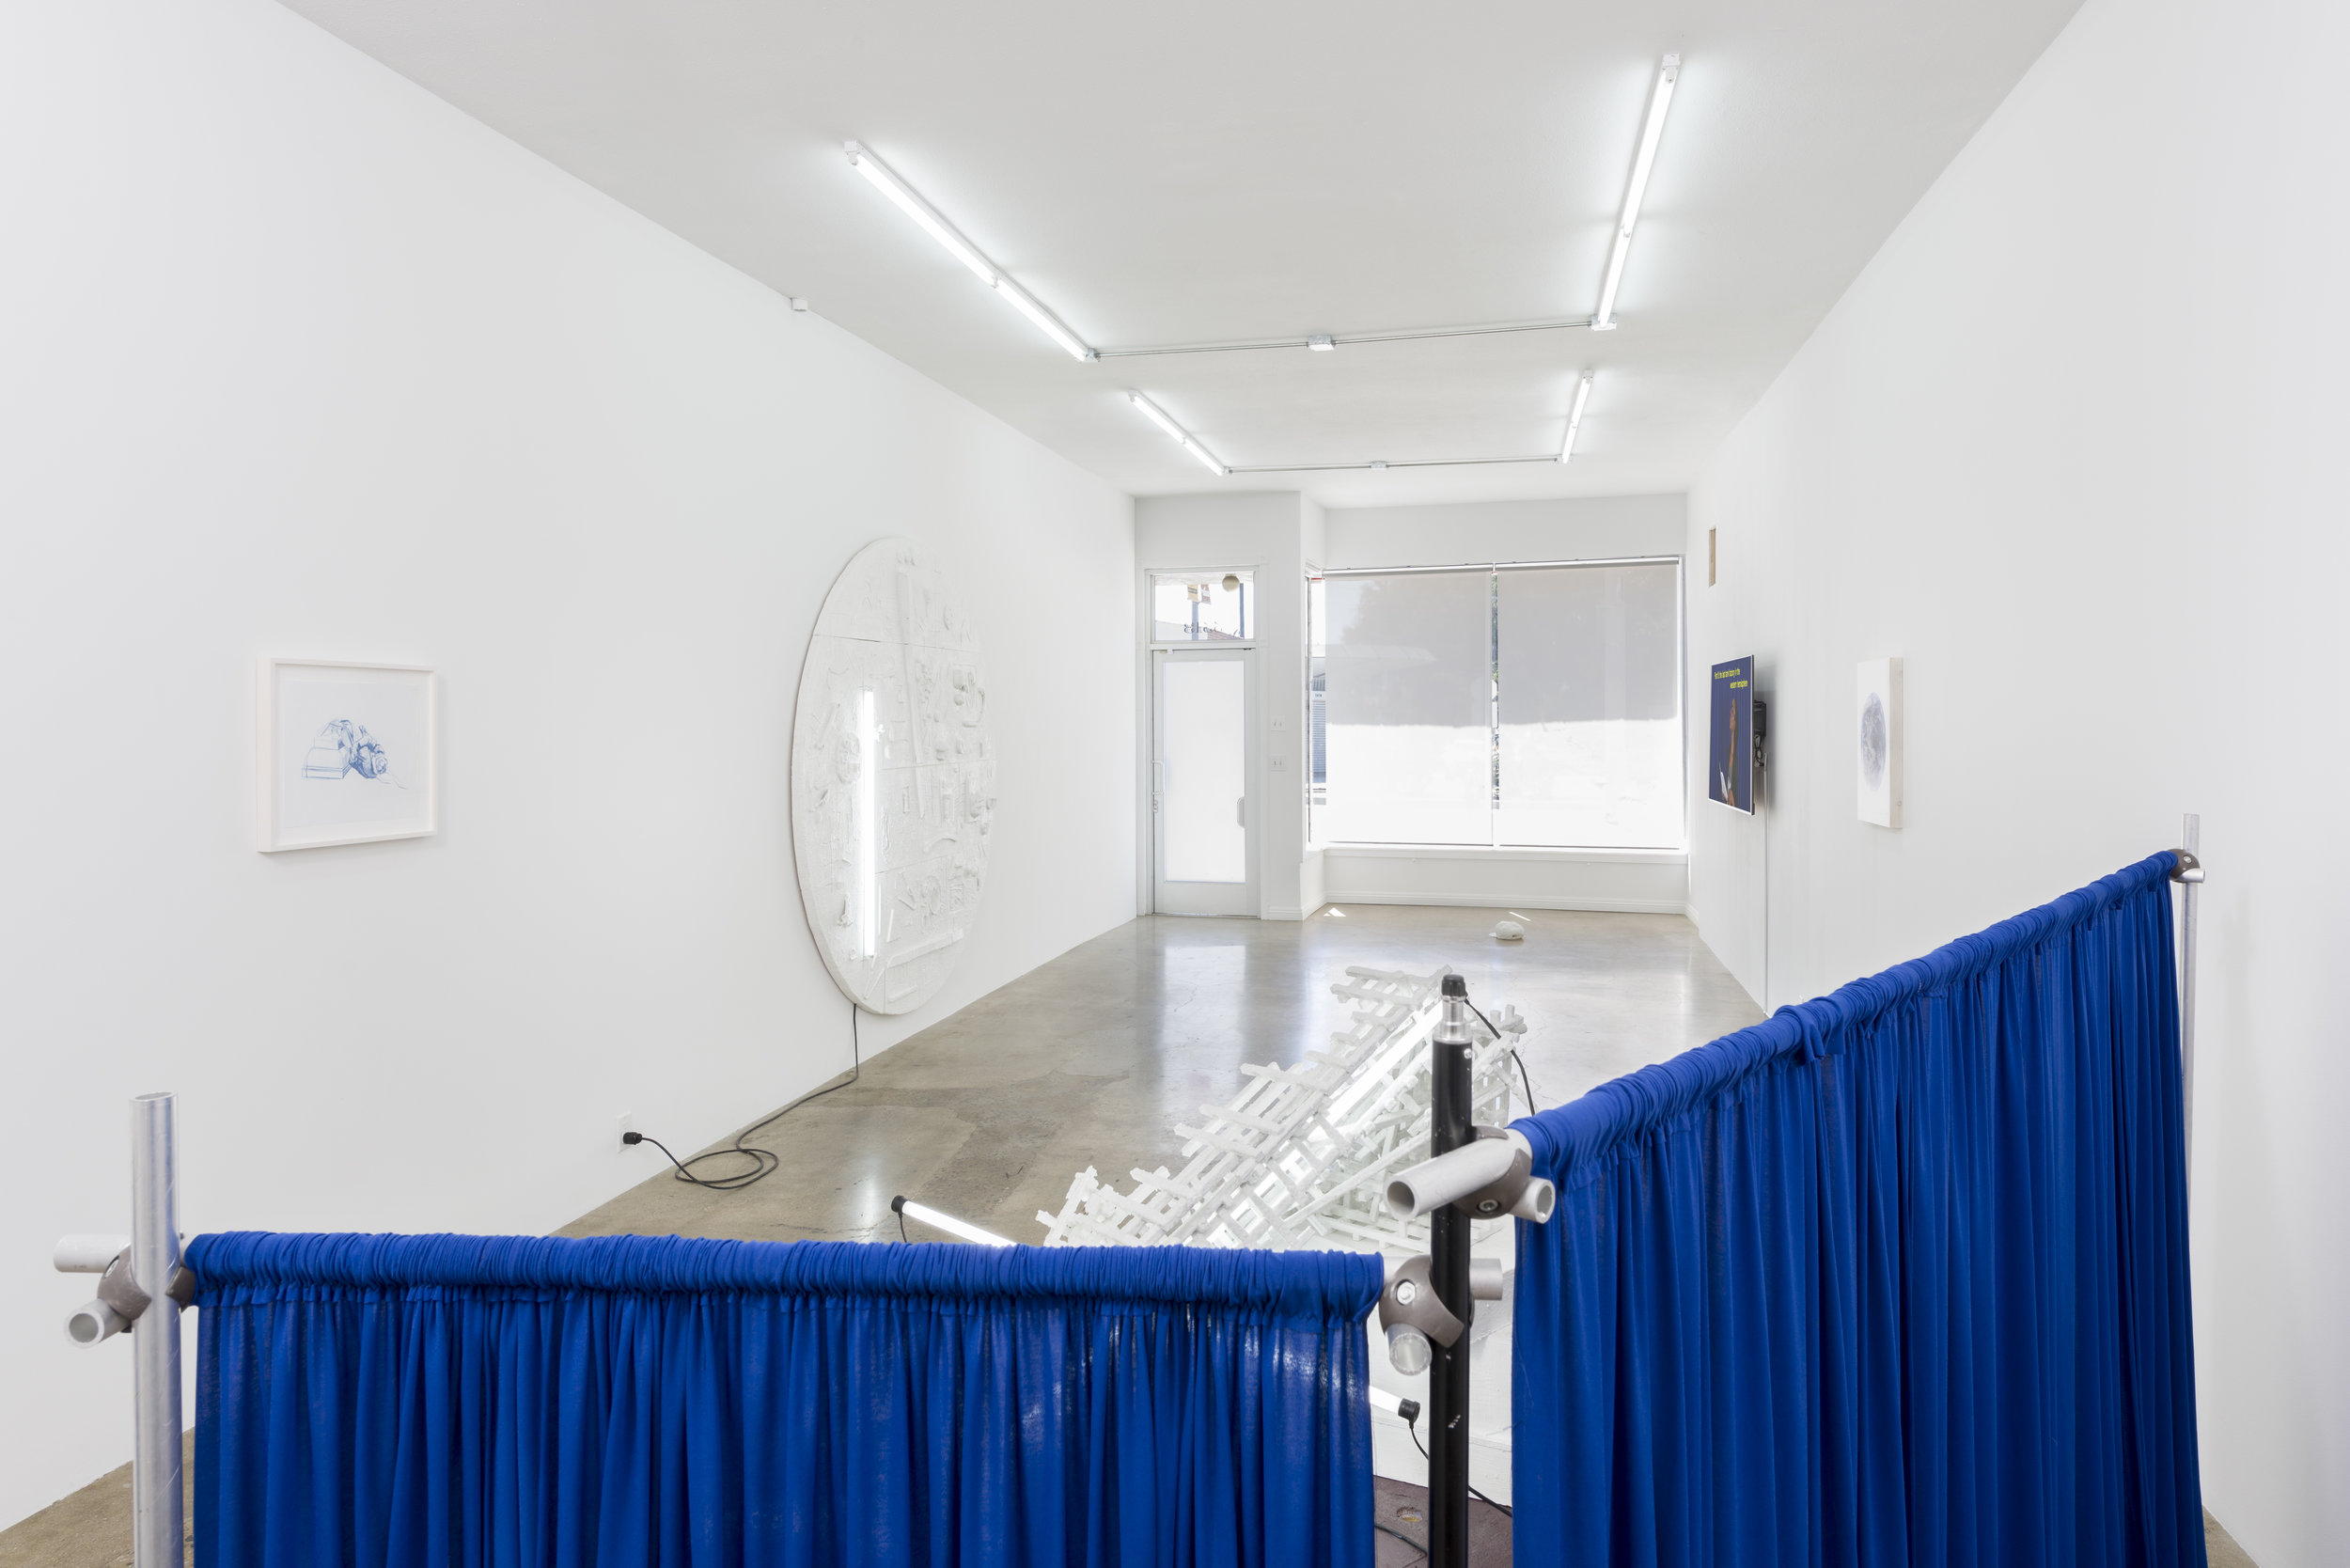 Installation view of Don Edler:  Two Minutes To Midnight   September 8 - October 27, 2019  Photo by Ruben Diaz   Link to press release.